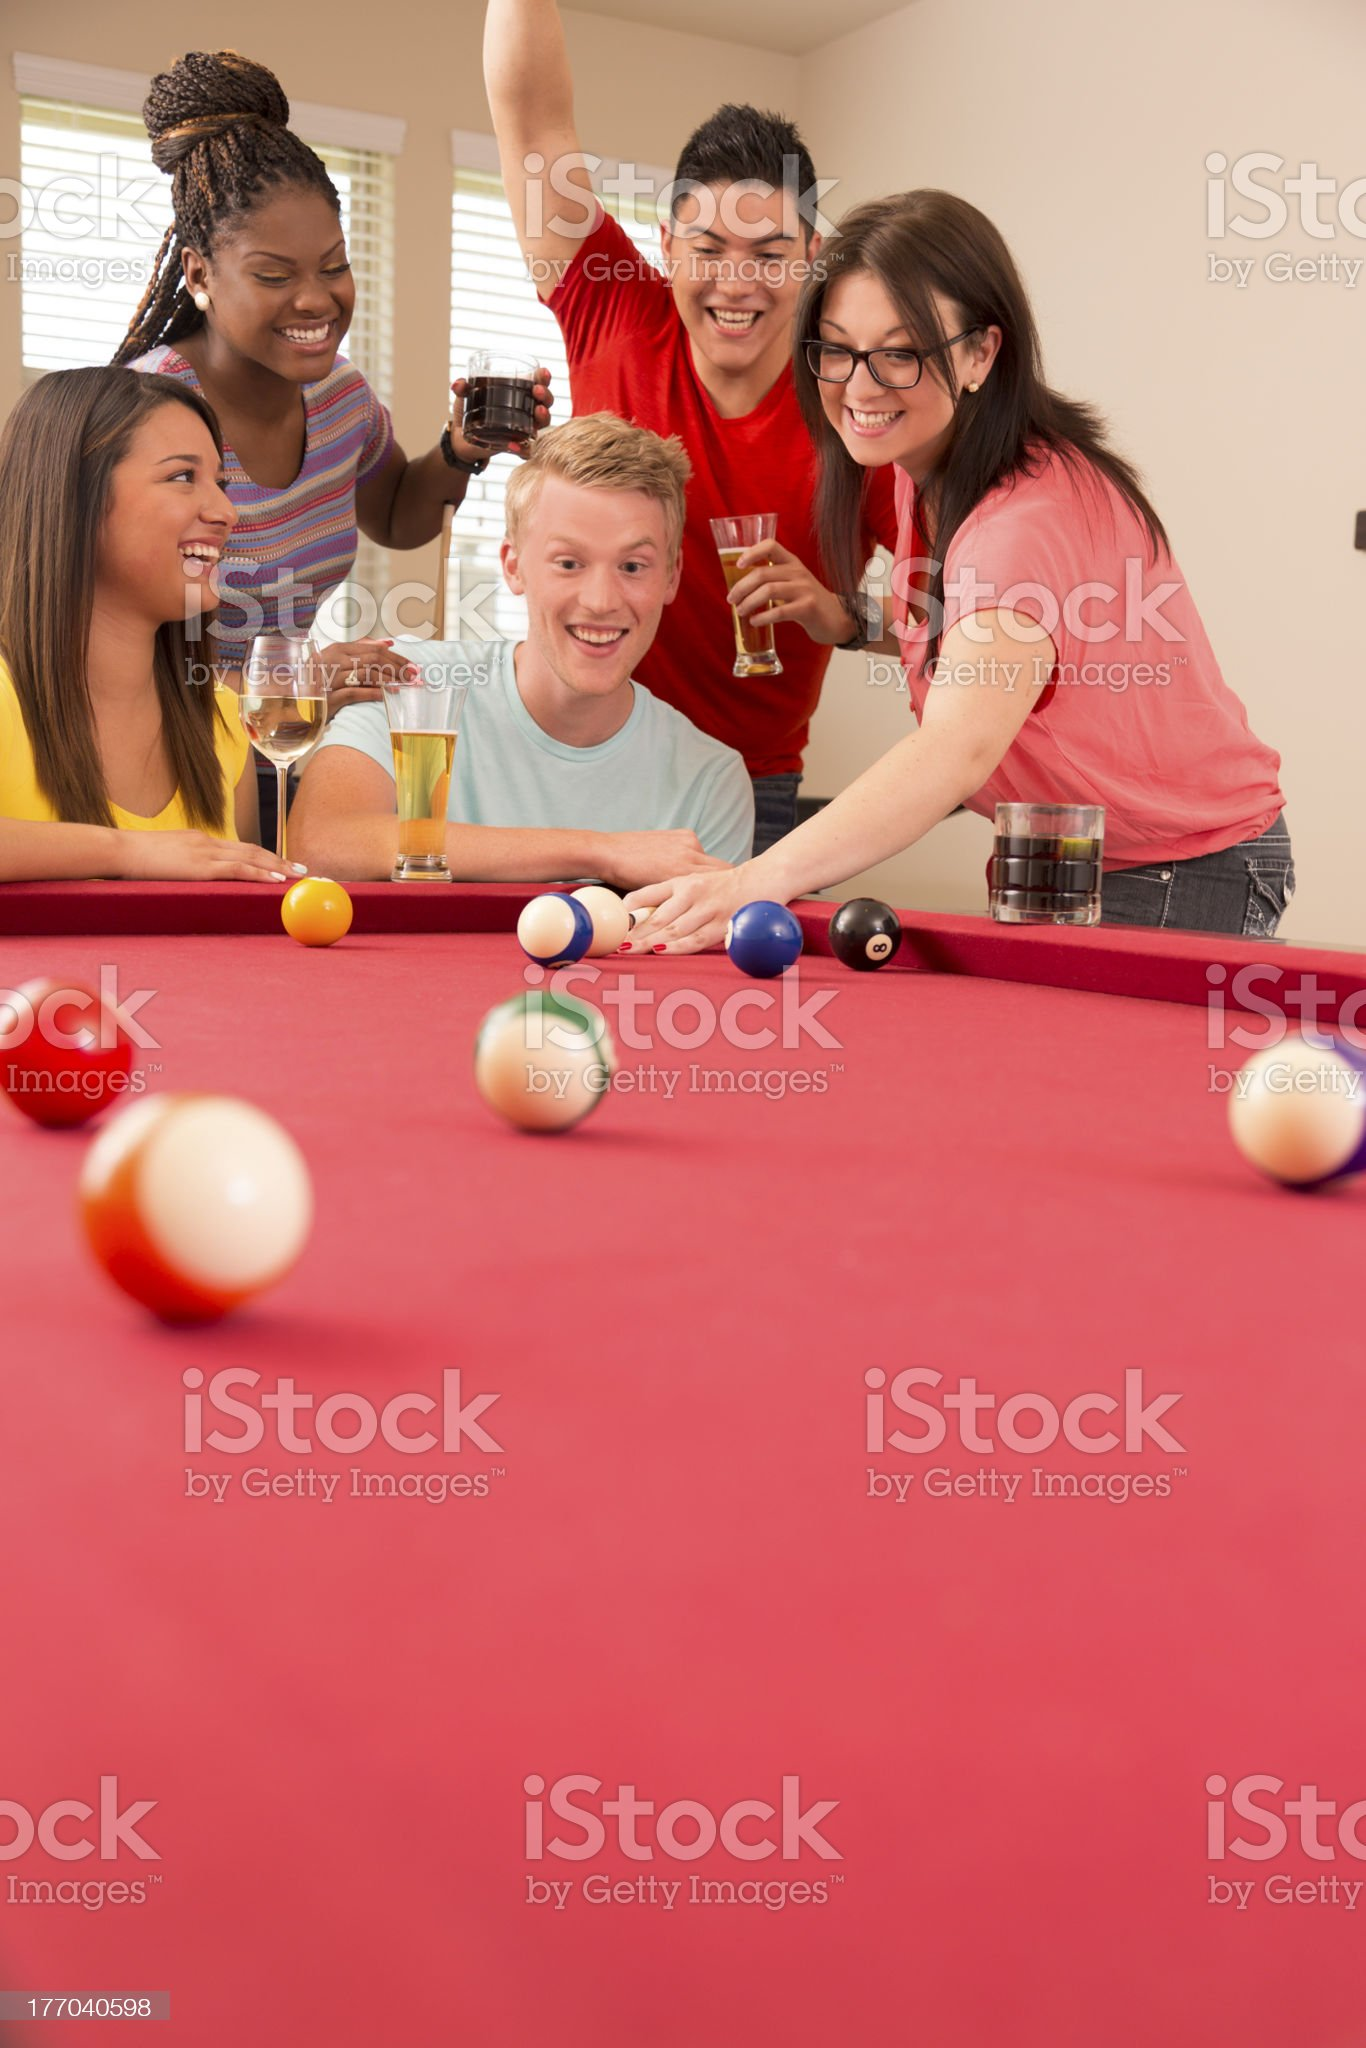 Relationships:  Friends enjoying a round of pool in gameroom. royalty-free stock photo